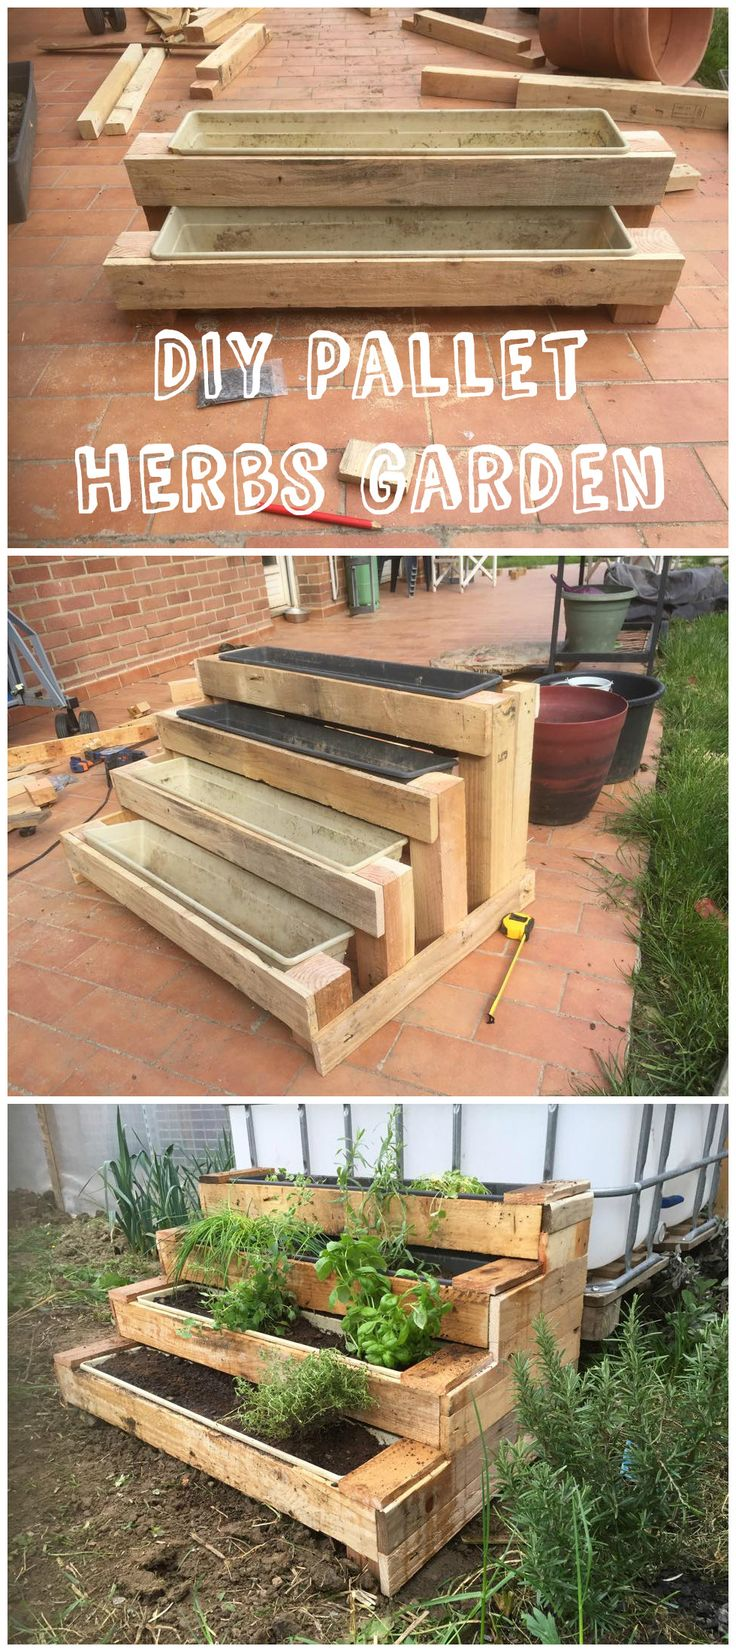 #Garden, #Herbs, #Planter, #Stairs Here is an original version of asmall herbs garden. The stairs shape is perfect to save space and avoid backaches!